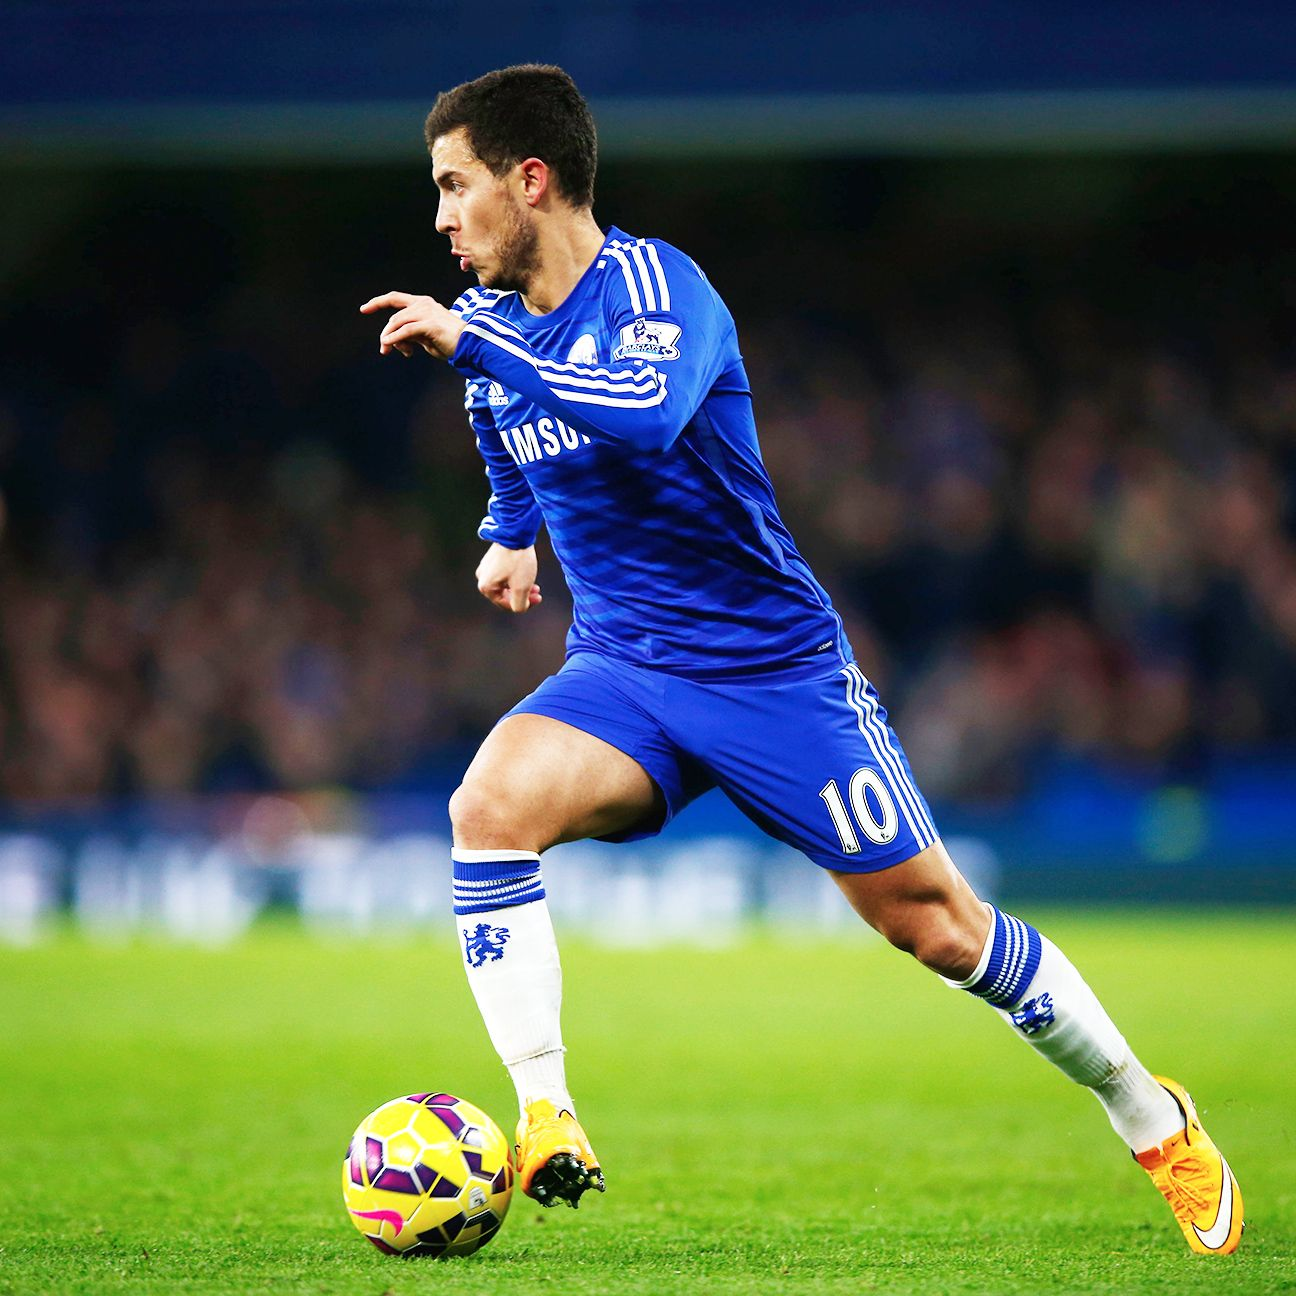 Chelsea's Eden Hazard was one of several fantasy standouts over the weekend.